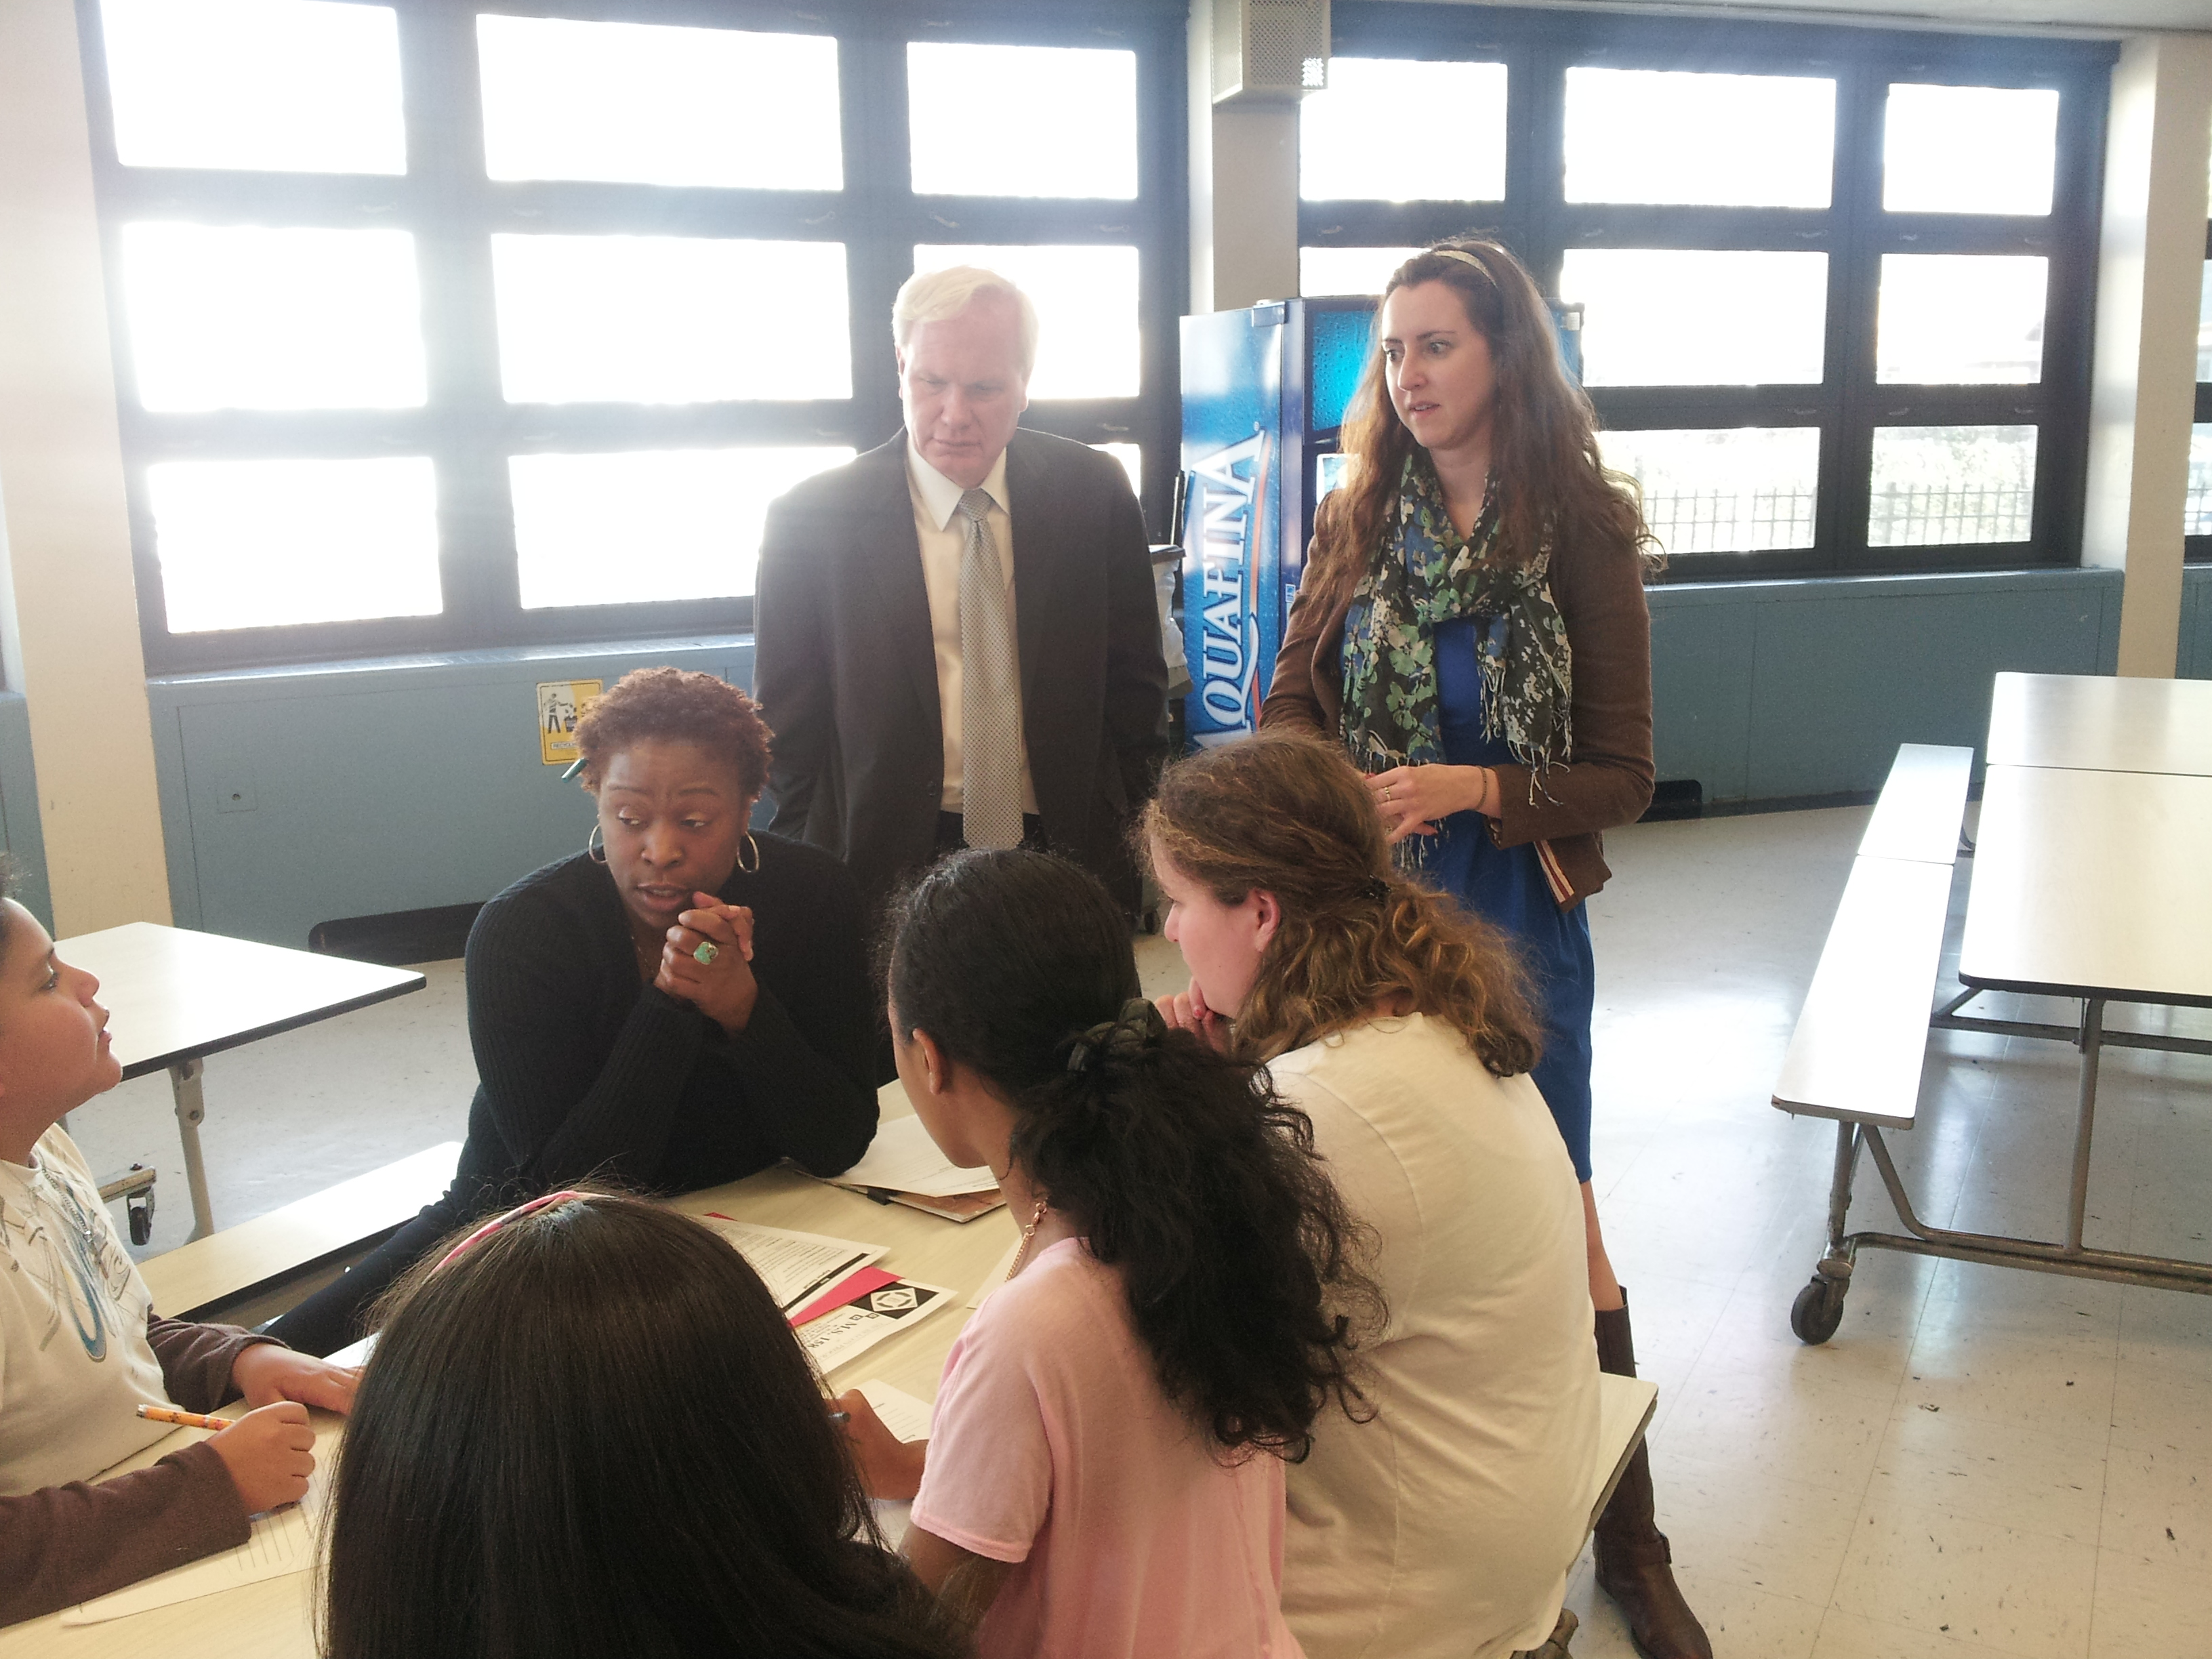 Assemblywoman Nily Rozic and State Senator Tony Avella visited M.S. 158 in Bayside to fight for continued funding its Beacon Program.